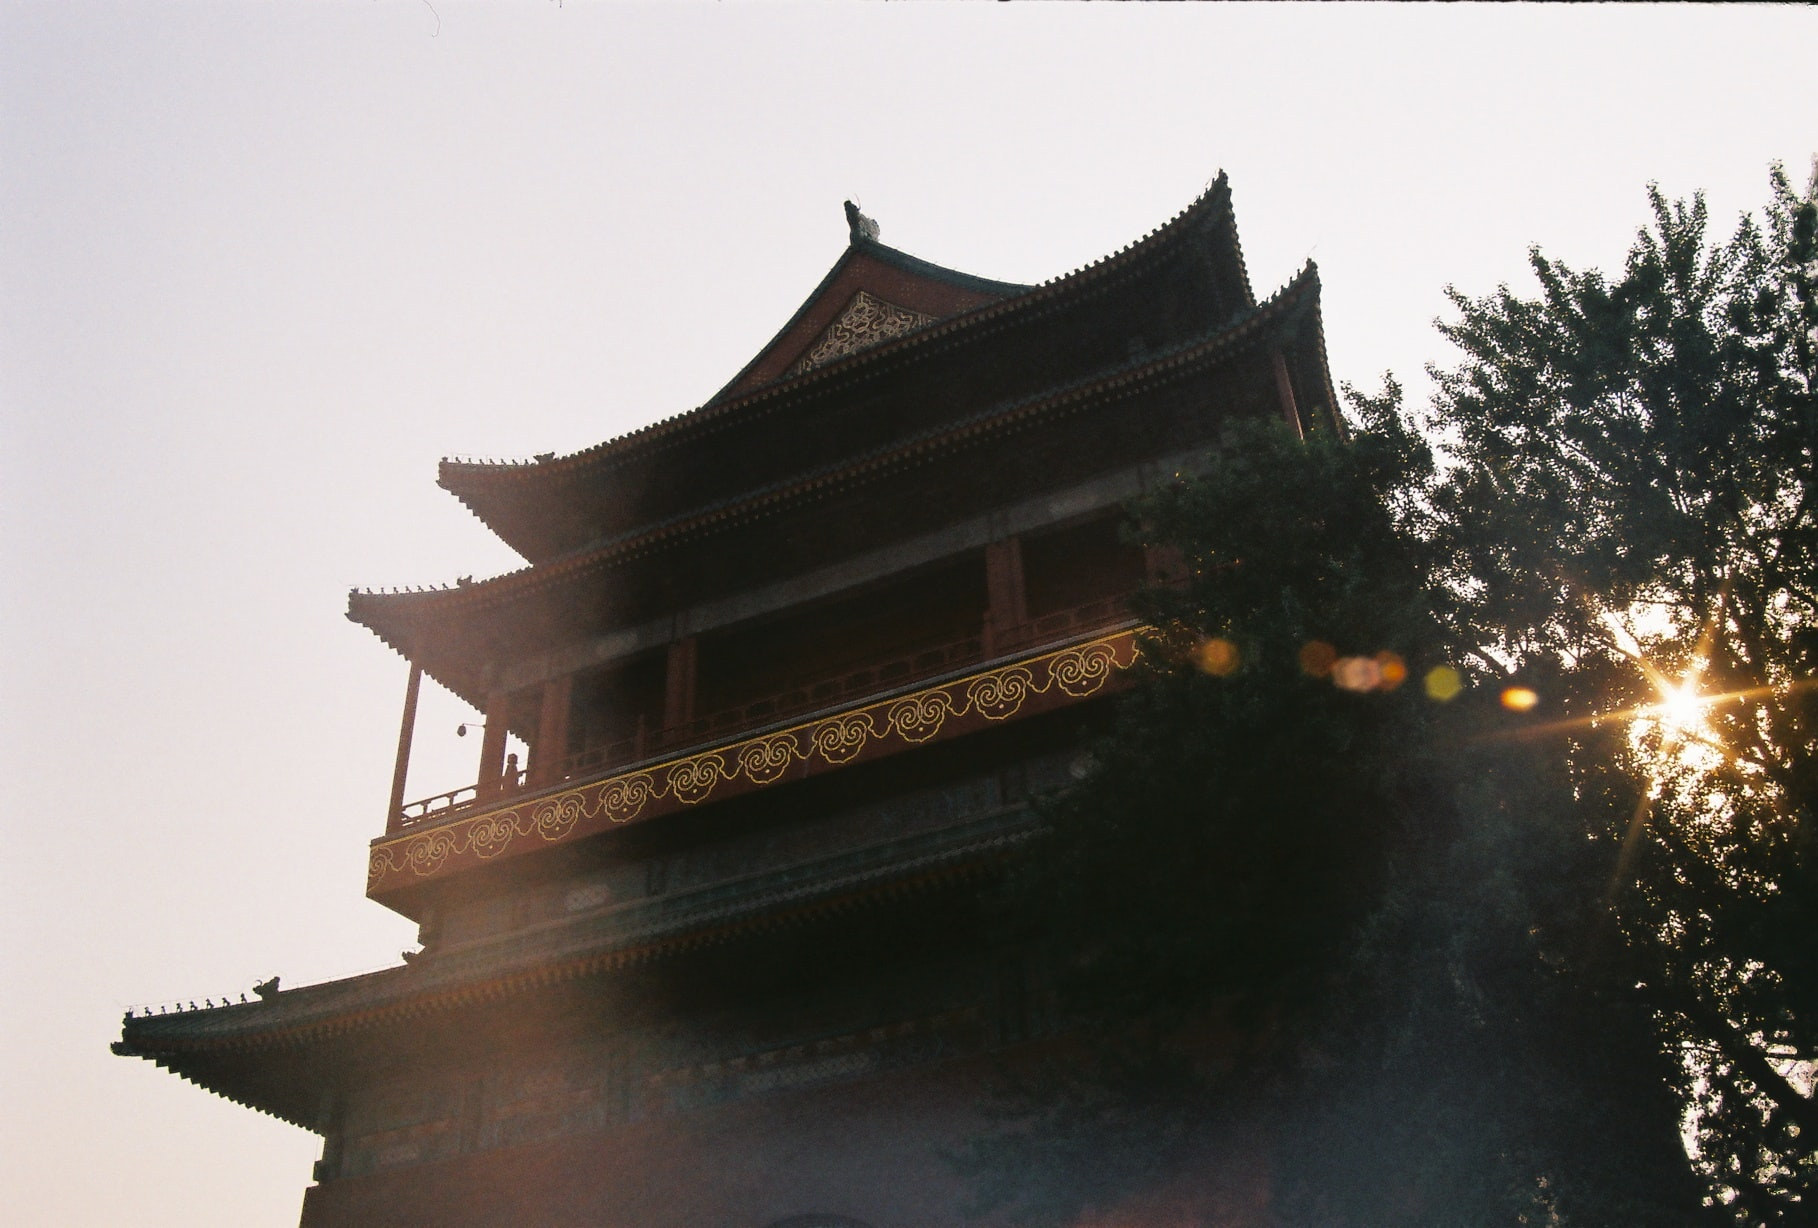 Tall traditional Asian house with a sun shining through a tree